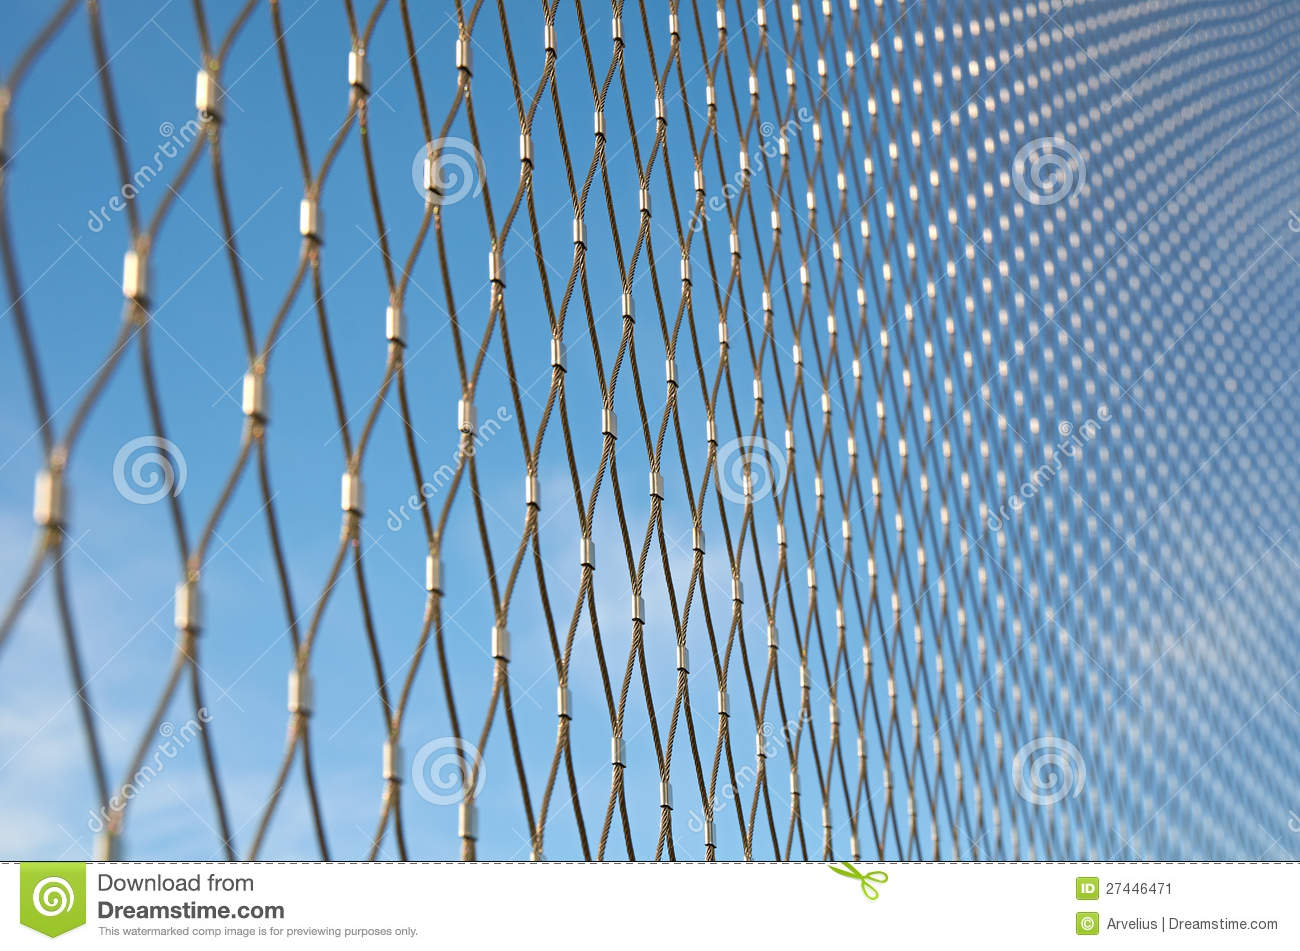 Wire net stock image. Image of steel, safety, connection - 27446471